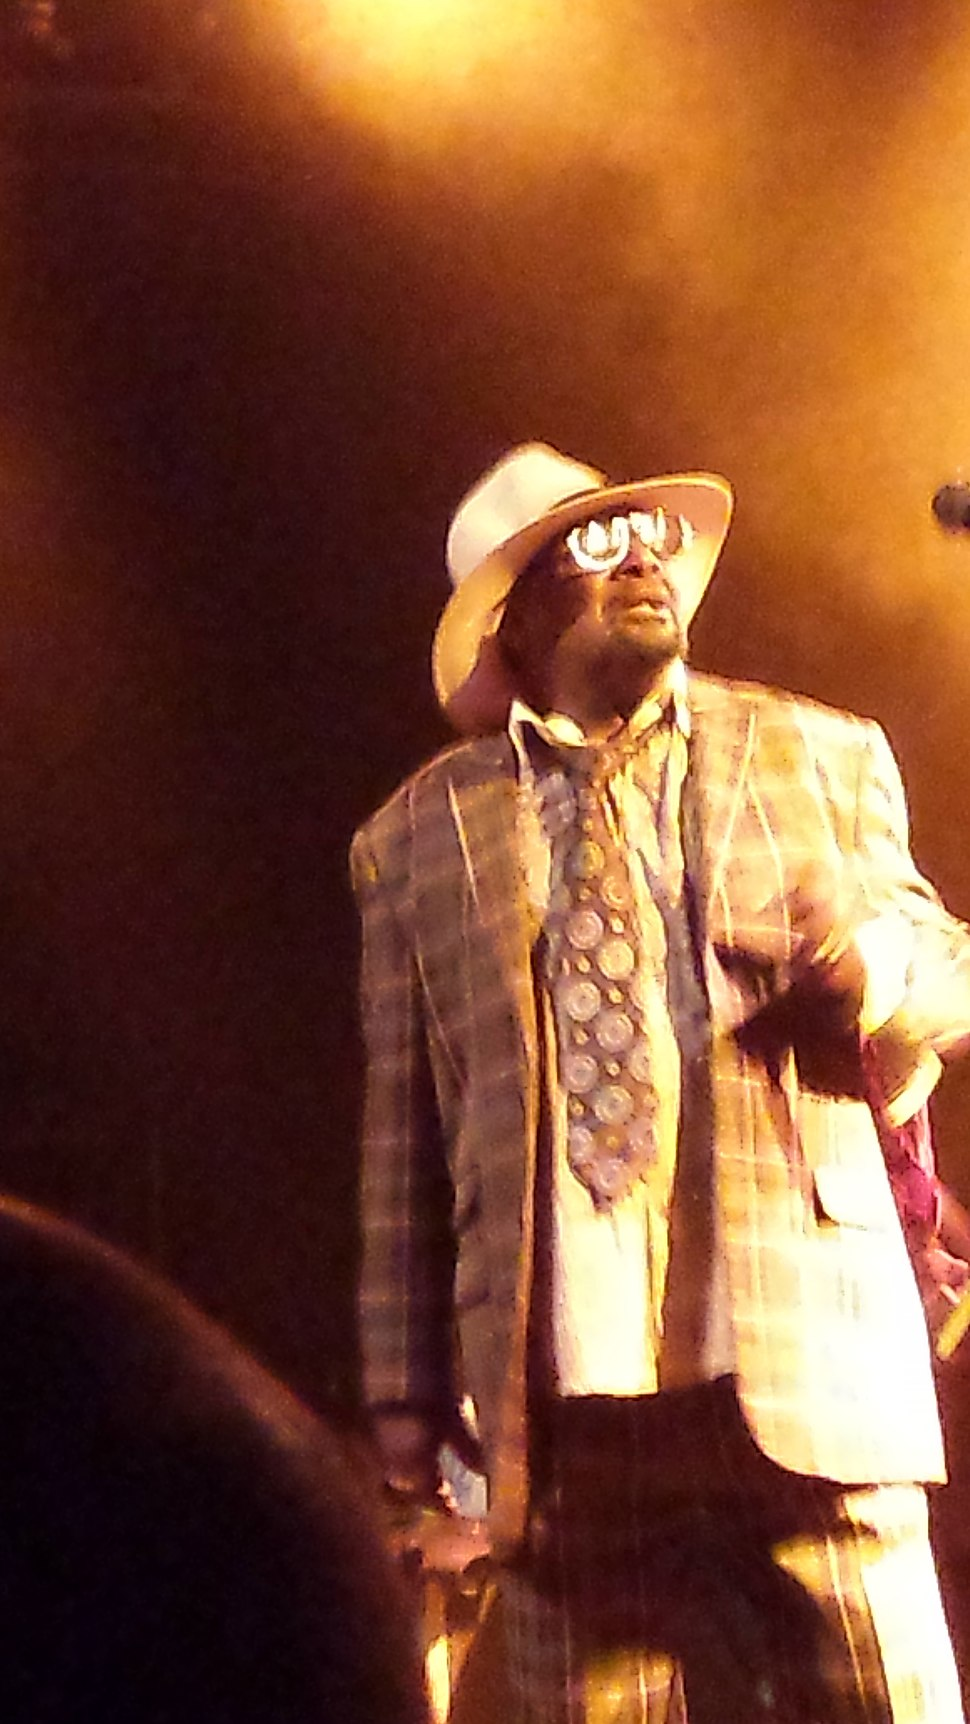 George Clinton performing in 2015